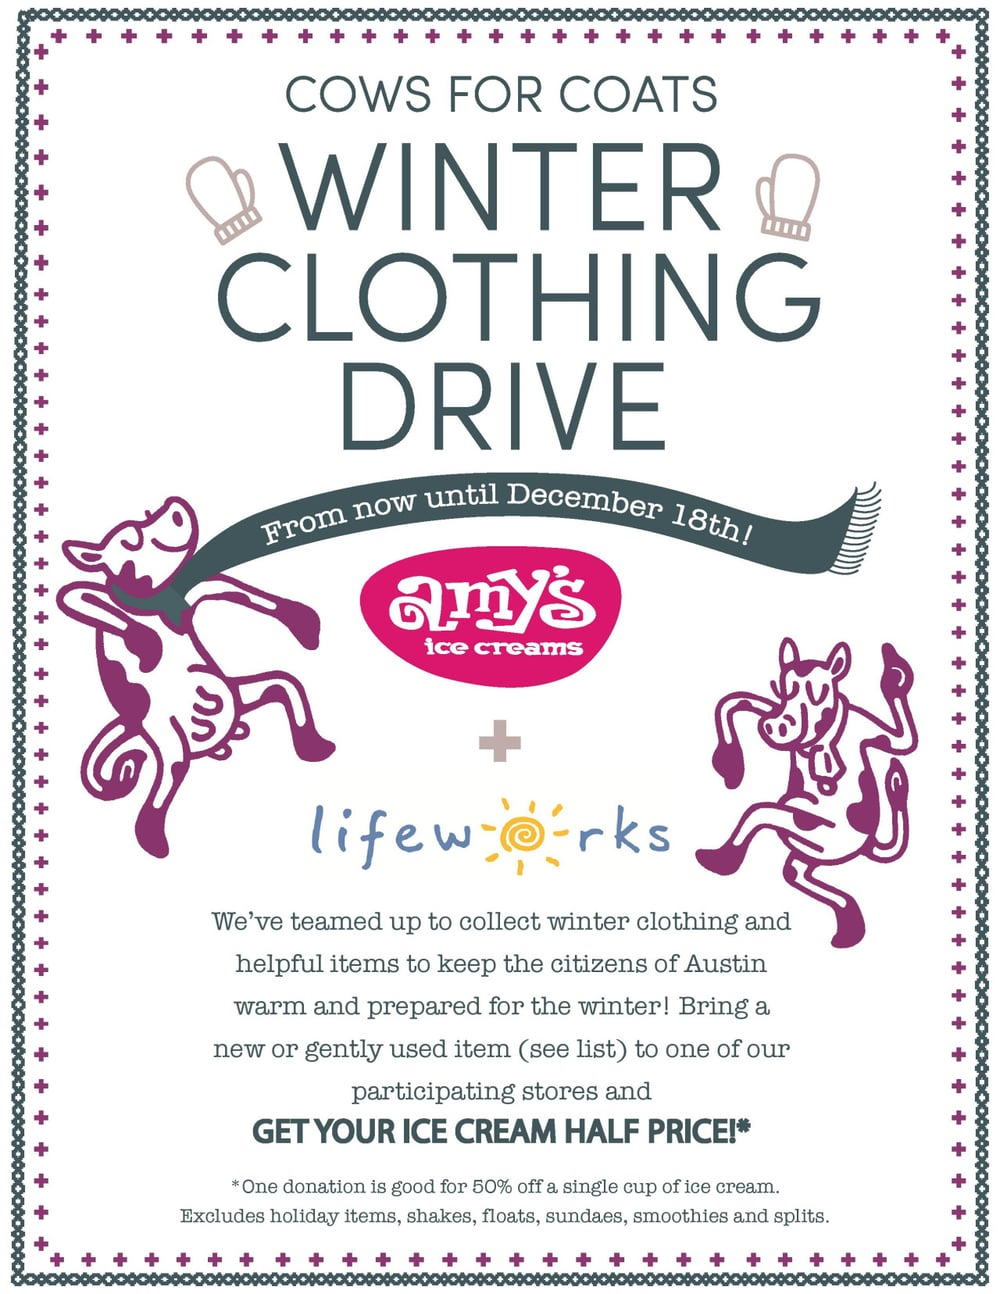 Help us give back this holiday season! Here is LifeWorks' wish list: Sleeping bags Backpacks (hiking preferably) Blankets Hoodies or sweatshirts (in dark colors preferably) Gloves Hats Thermals Wallets (with chains) Head lamps or flashlights Notebooks or journals Earbud headphones Body wipes Bring an item to one of our participating locations - 6th Street, Austinville 78750, Austinville 78704, Hill Country Galleria, Mira Vista, Southpark Meadows, West Gate - and get your cup of ice cream half price! Ask your scoop for details!